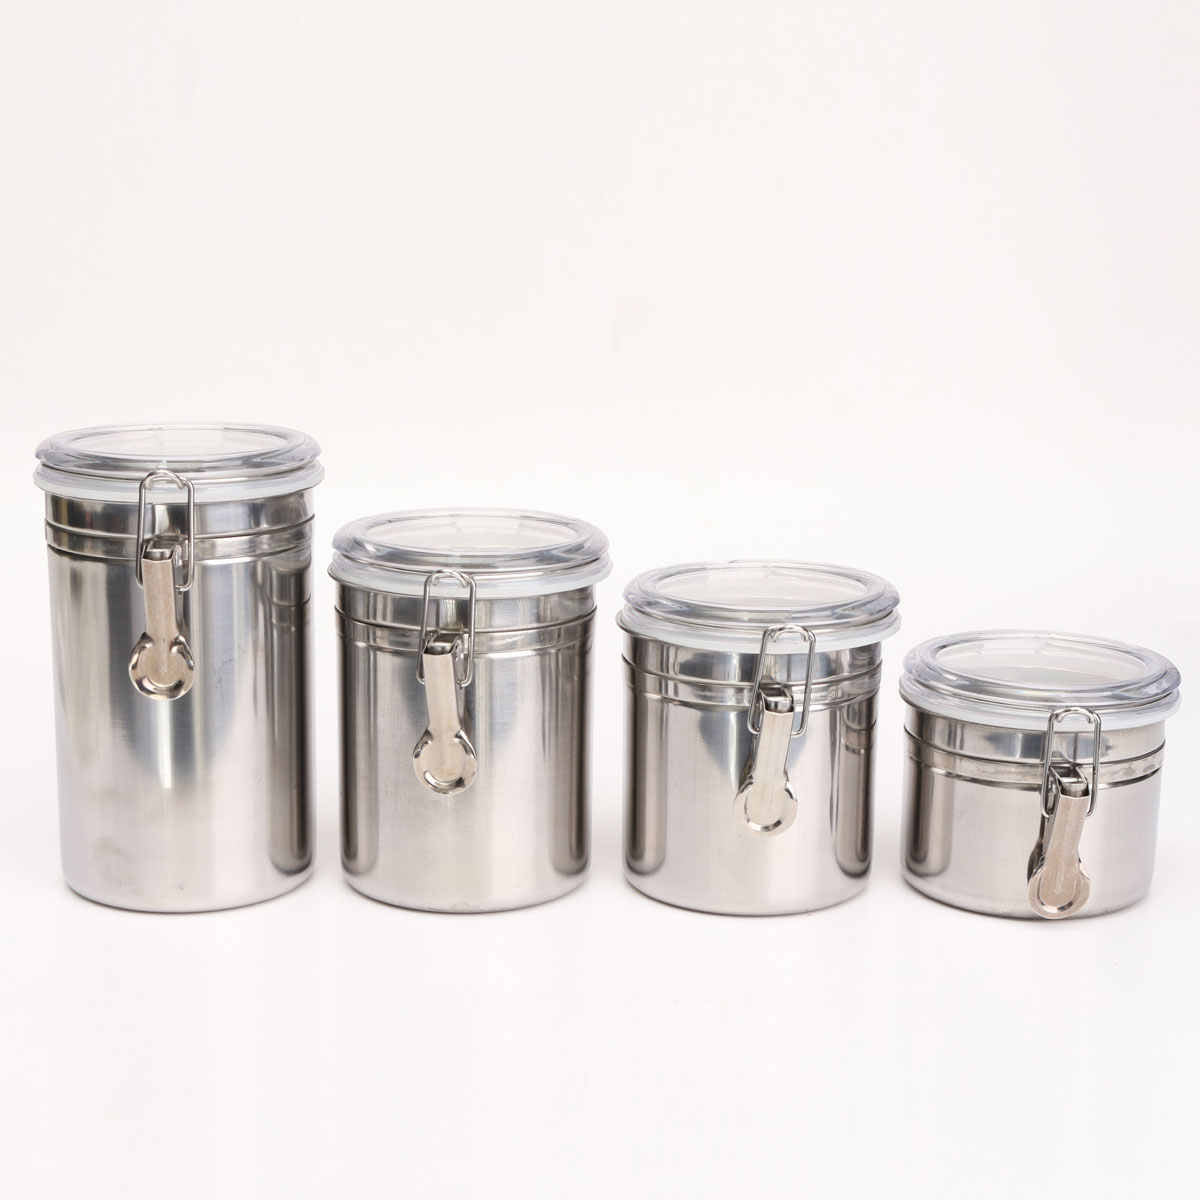 Bean Storage Cans